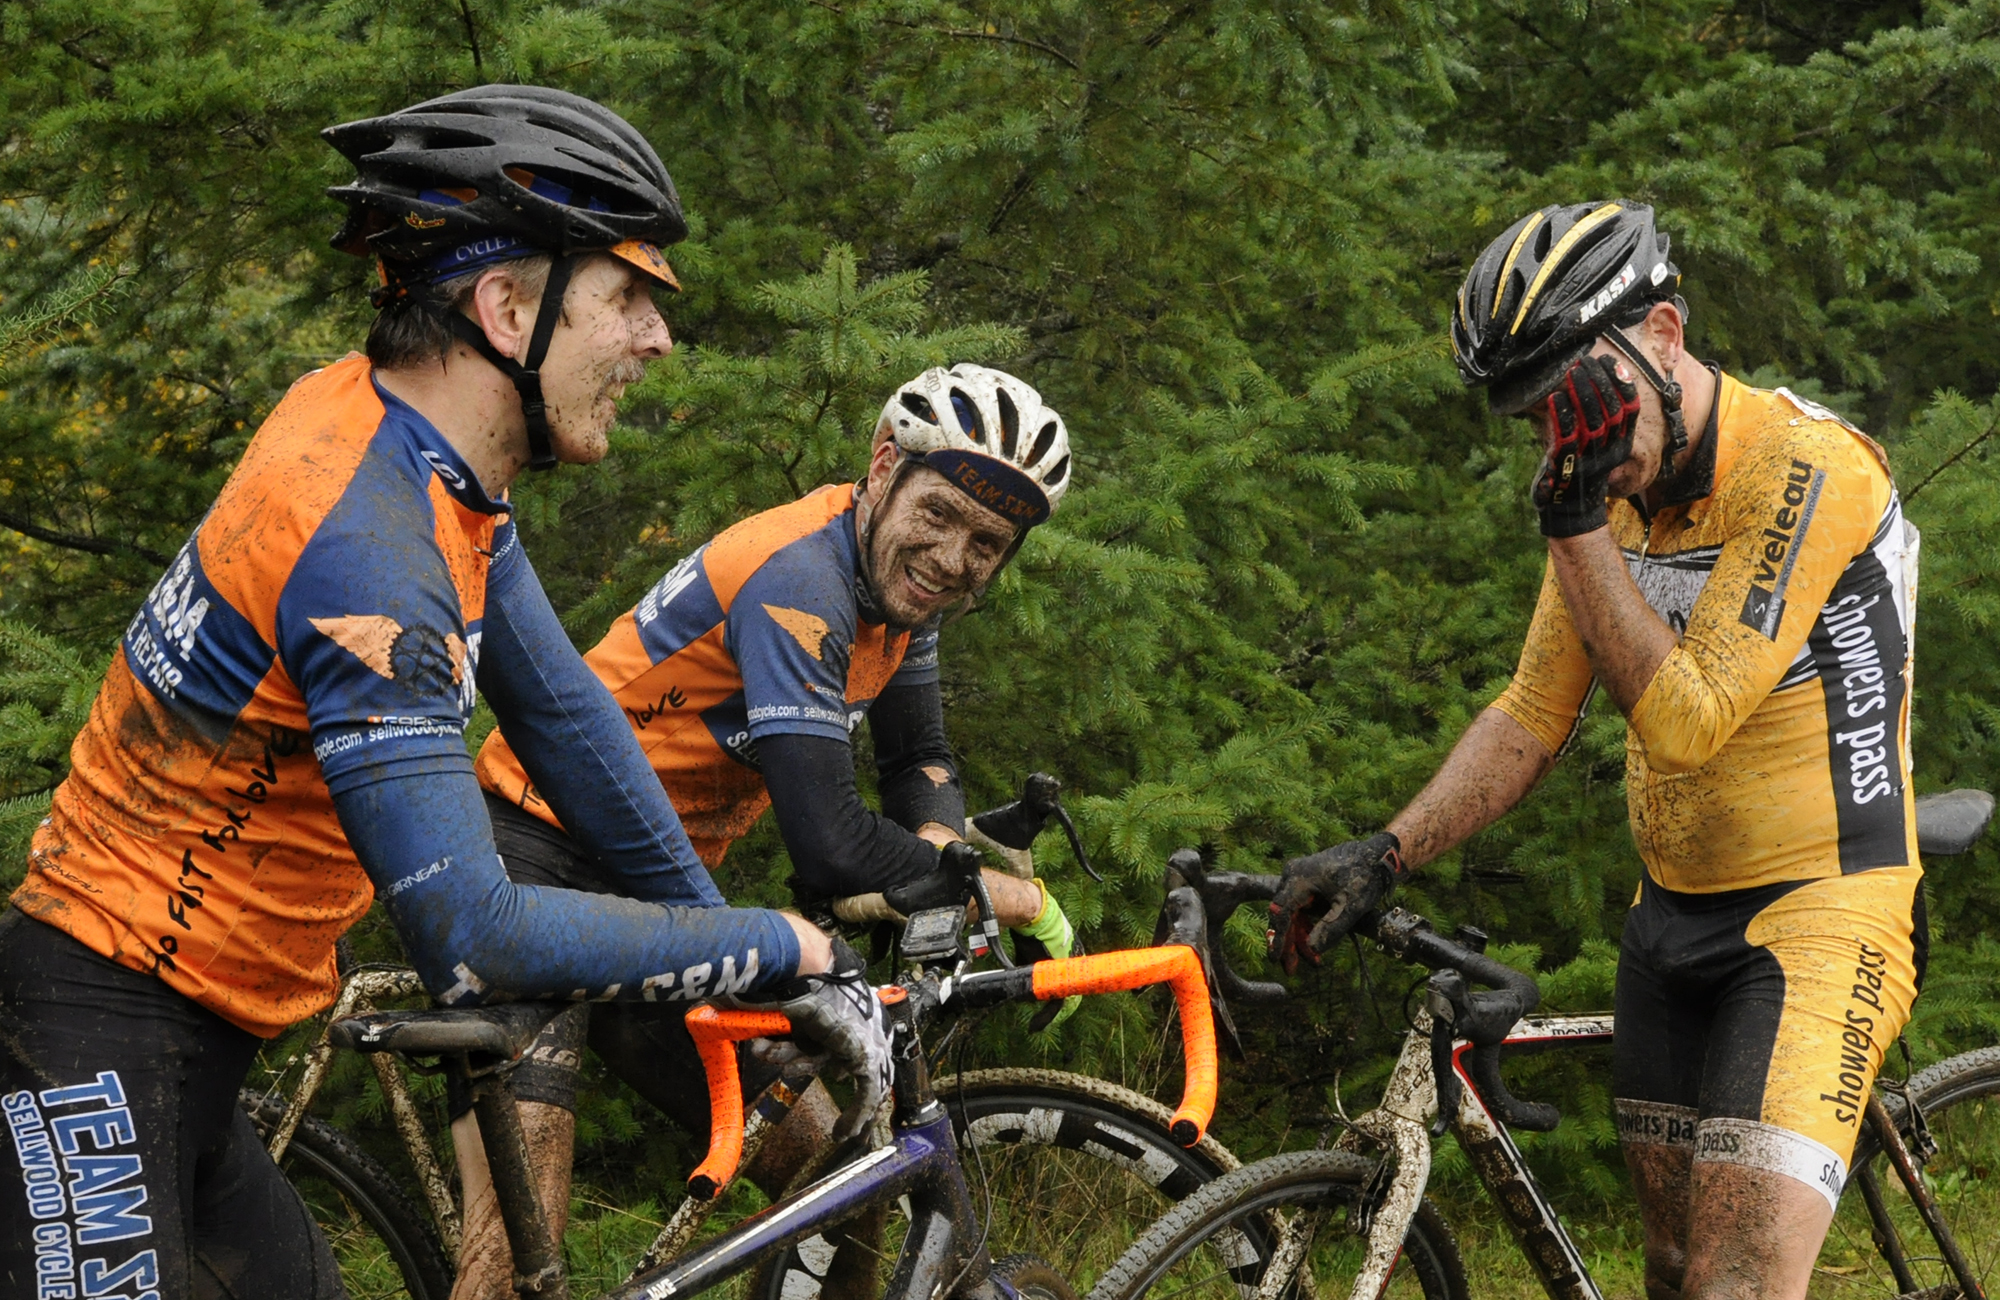 SellwoodCycle_CCBP_06